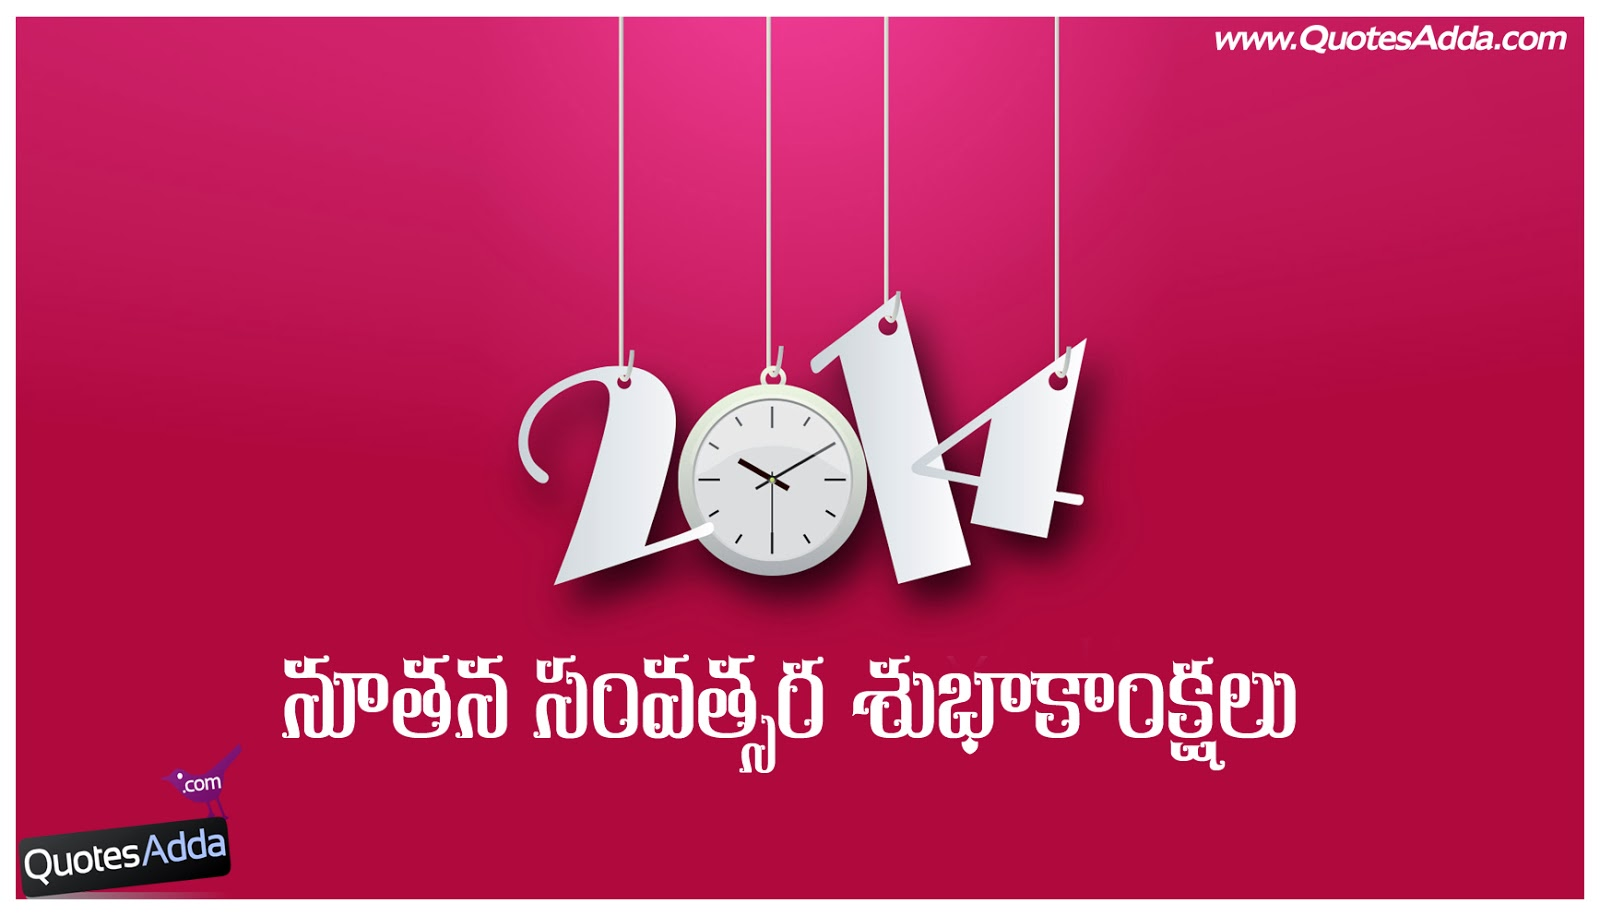 quotesadda telugu quotes 1600 x 916 116 kb jpeg credited. 1600 x 916.New Year Wishes For Lover Essays In Hindi Language